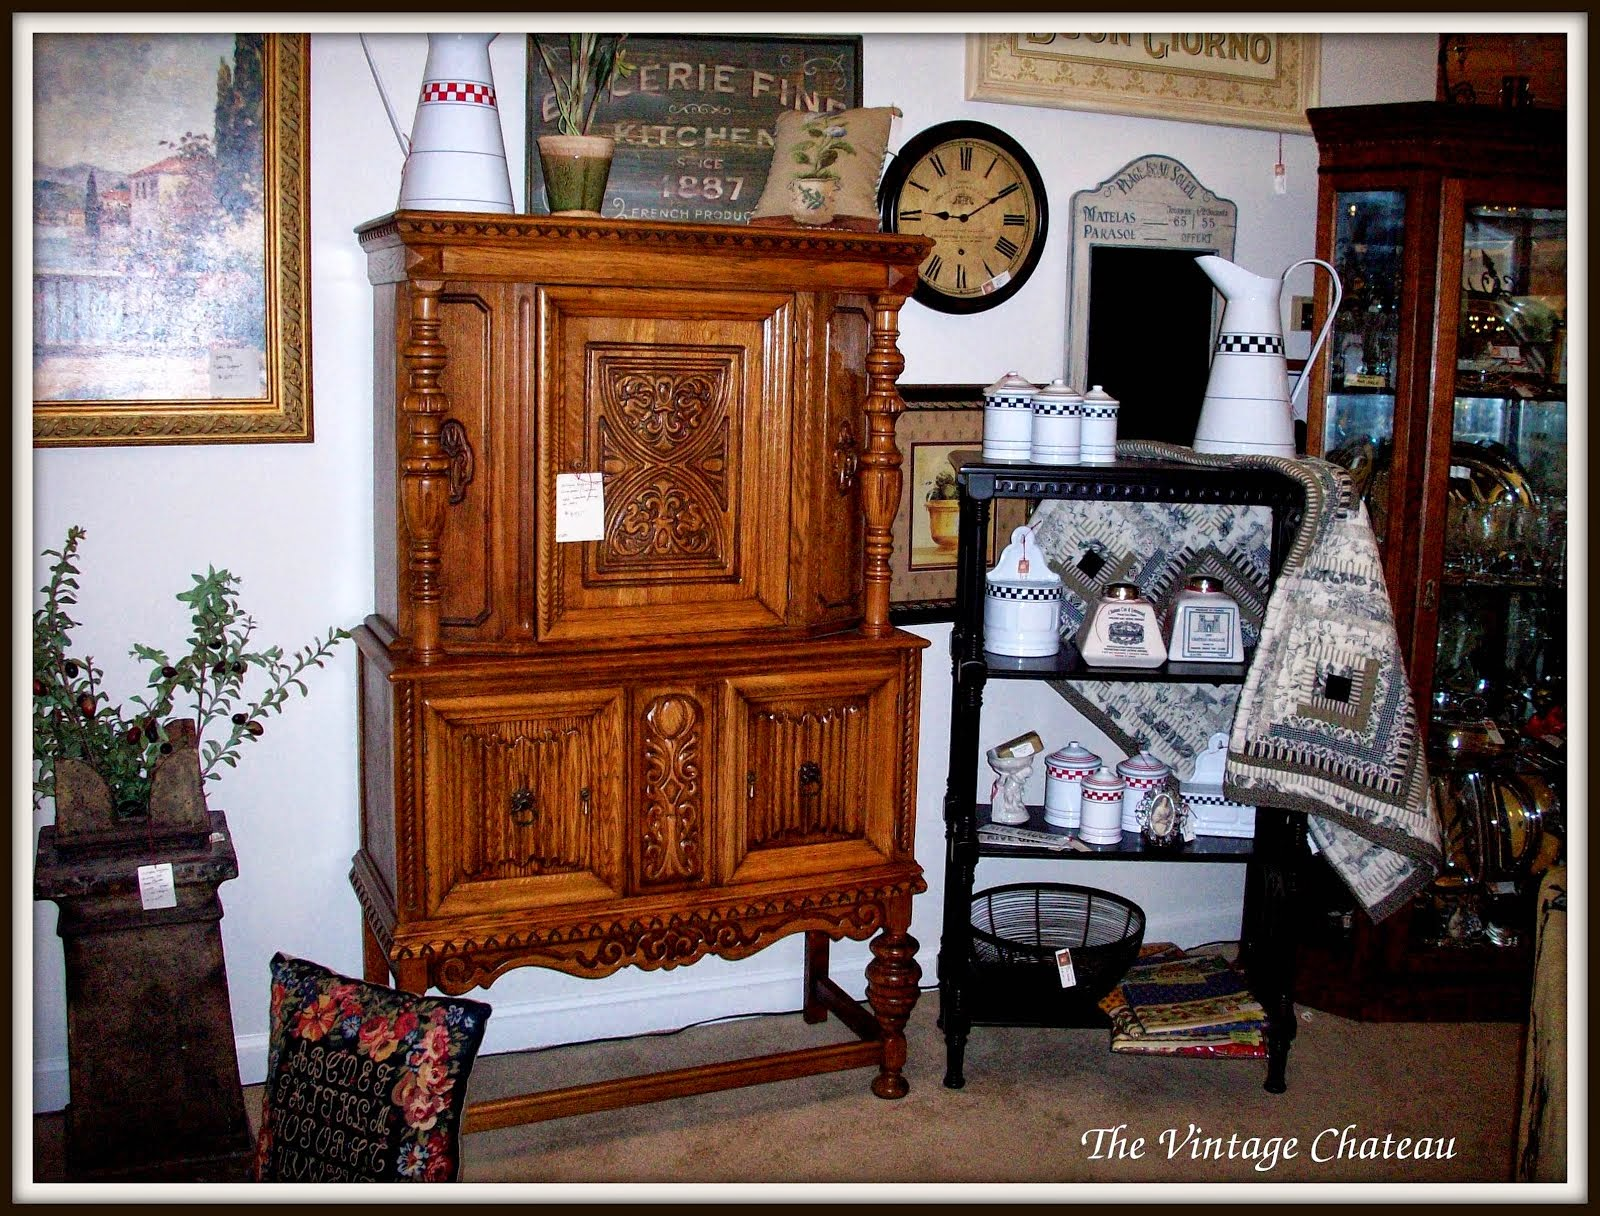 My shop Chateau Interiors located in Merchant Square Antiques, Chandler,AZ showroom #96